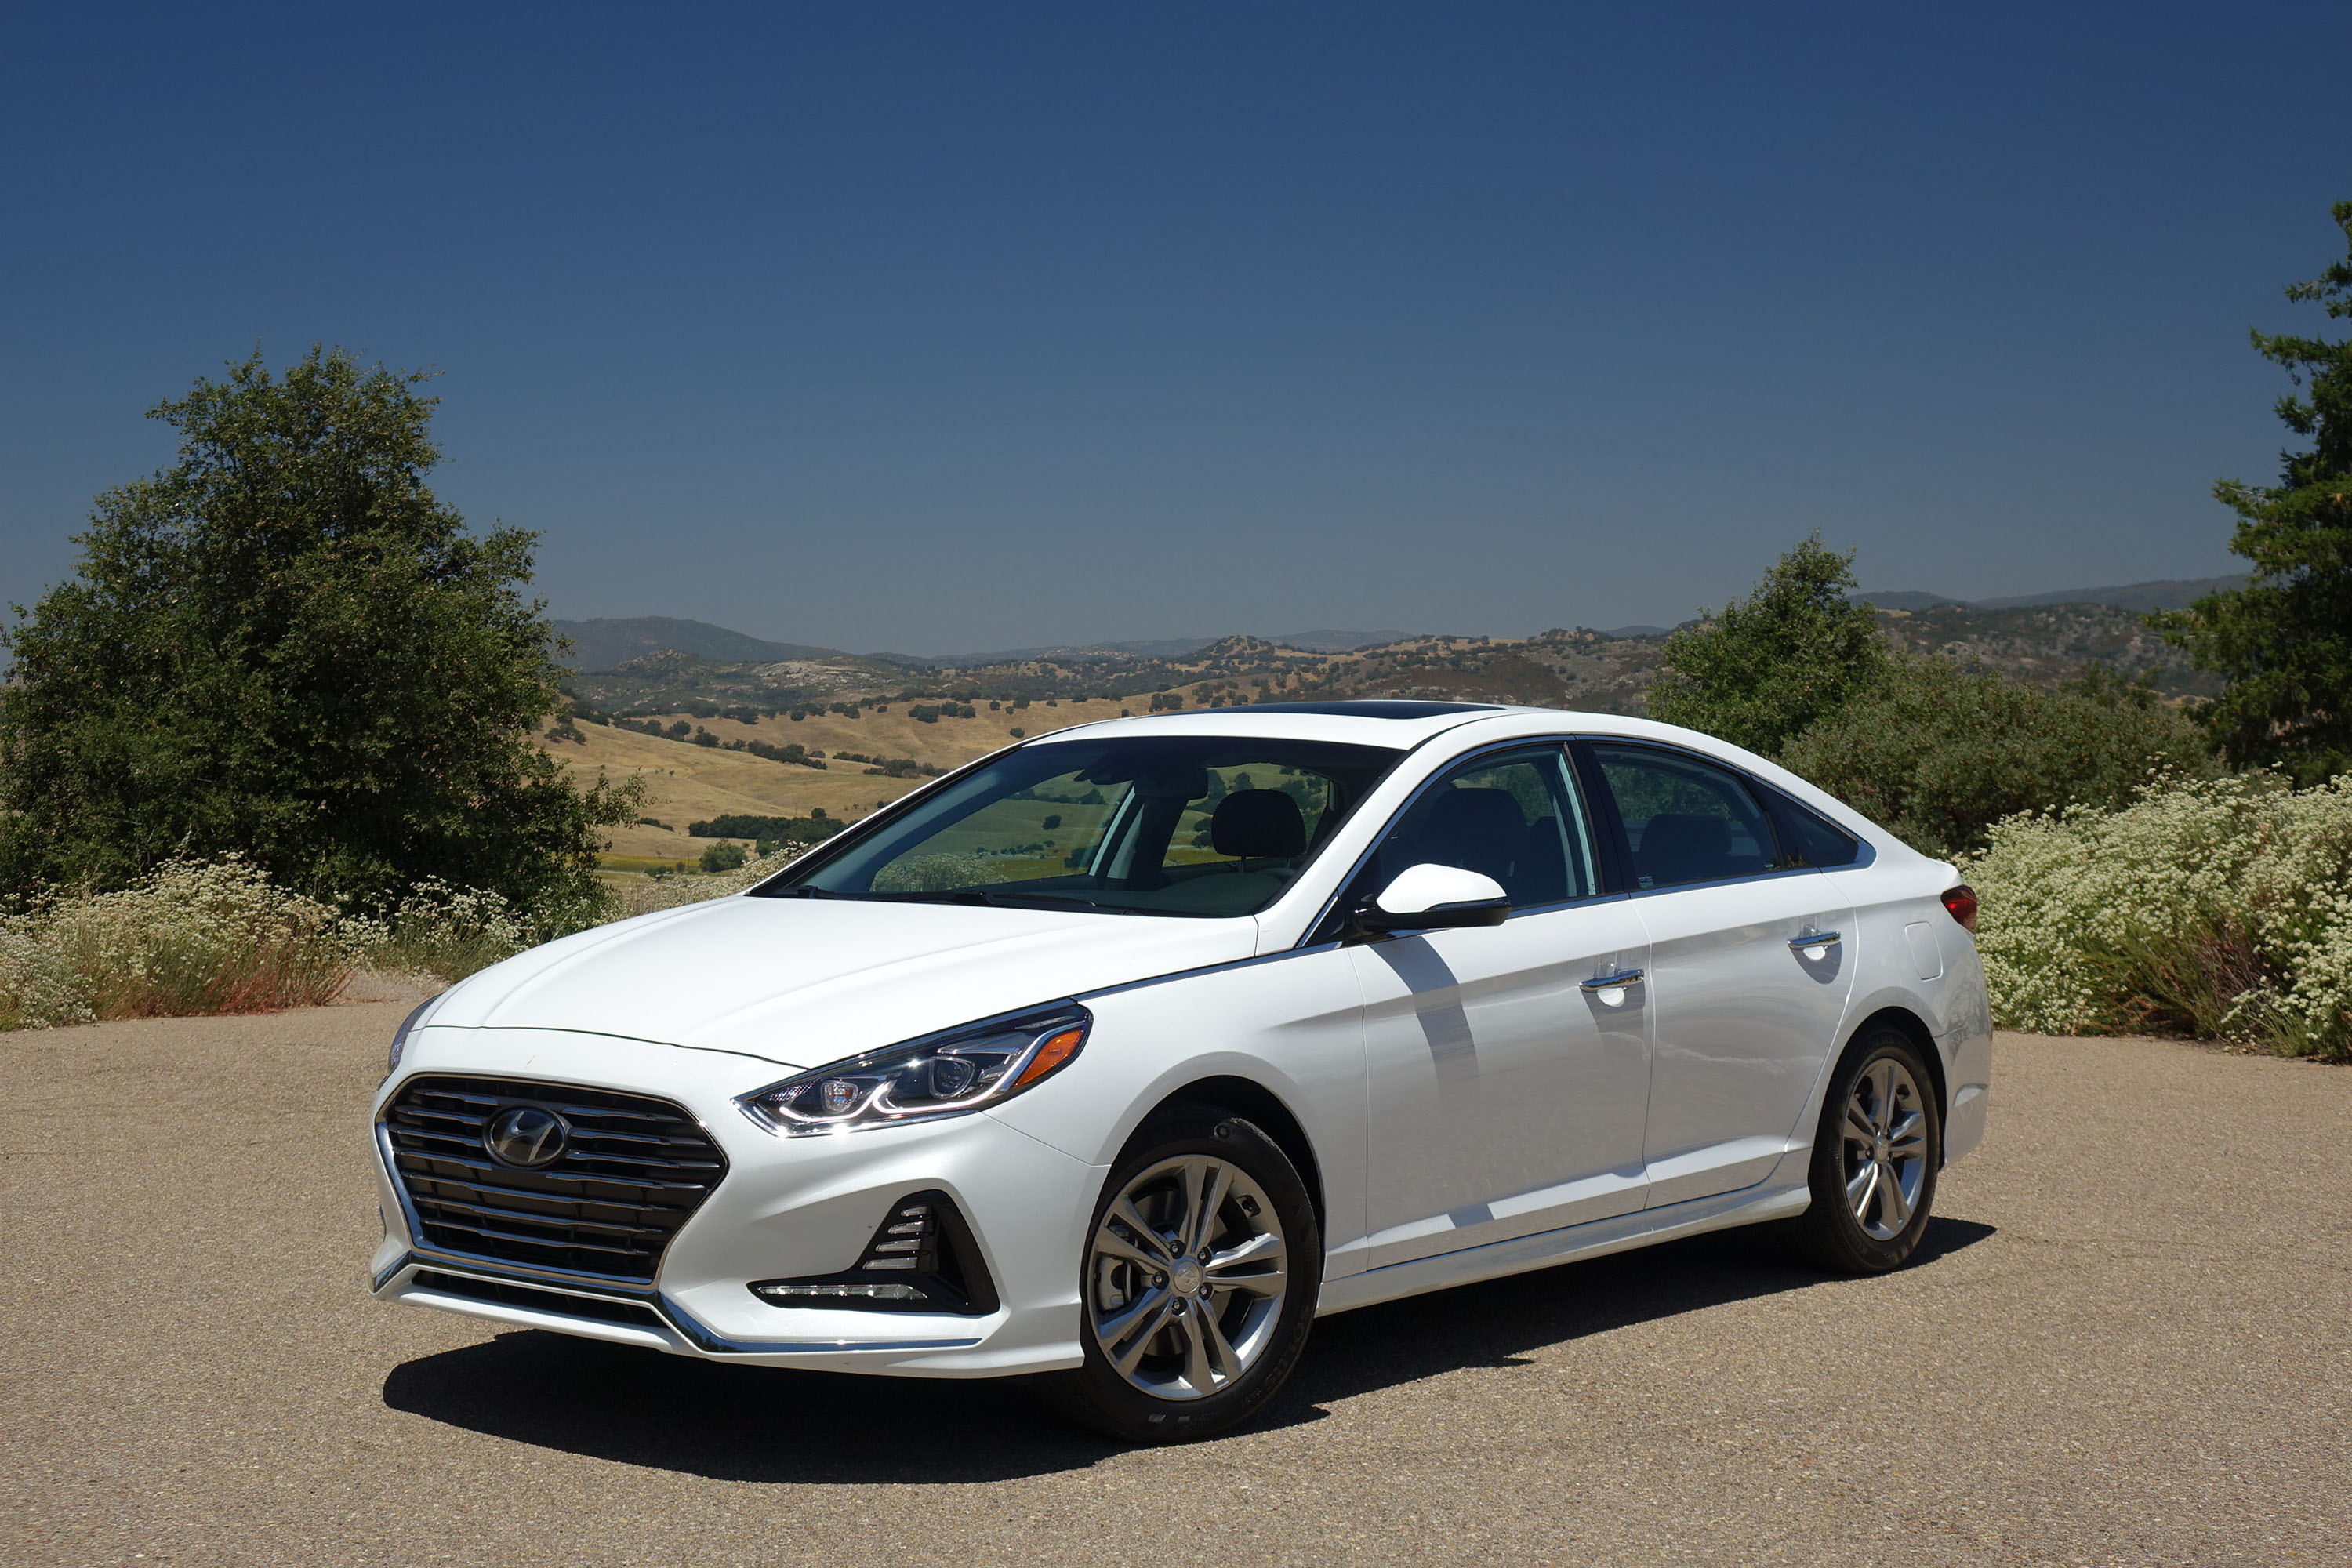 2018 Hyundai Sonata Driven Mercedes S Cl Honda Accord Hybrid